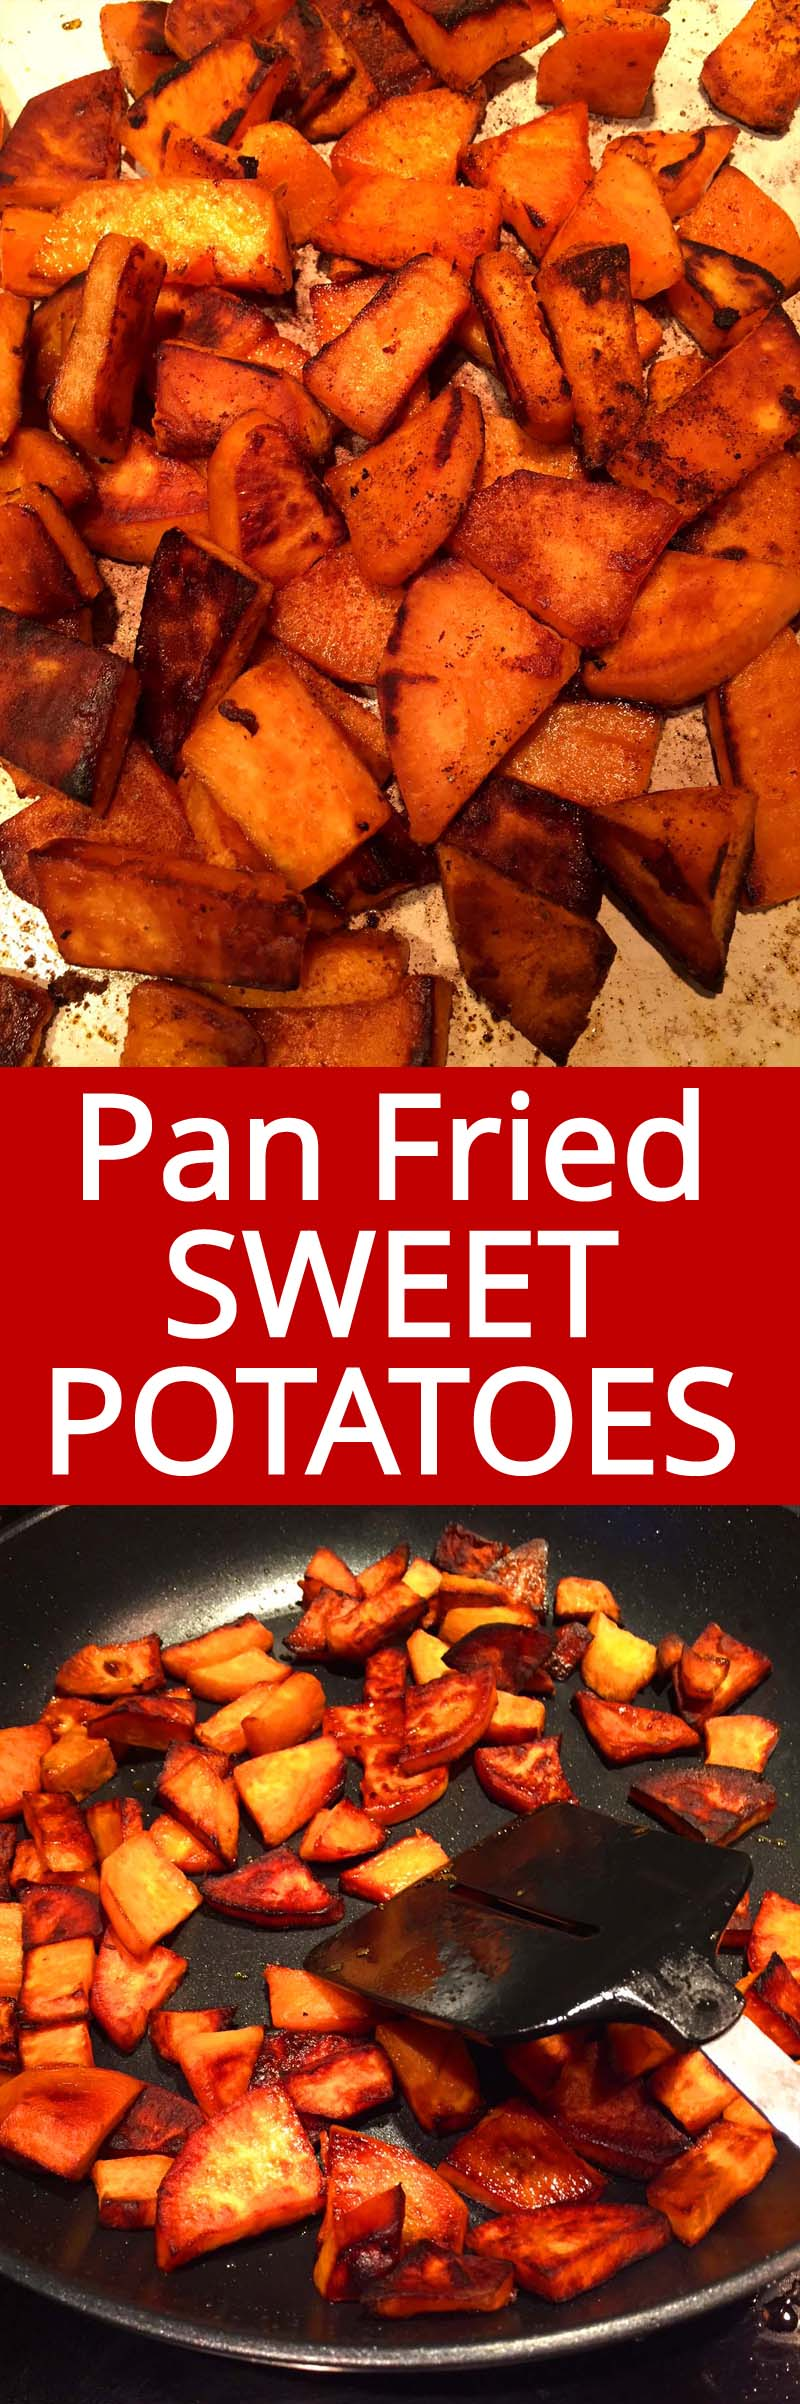 These pan fried sweet potatoes are amazing! So easy to make and so my healthier than regular potatoes!